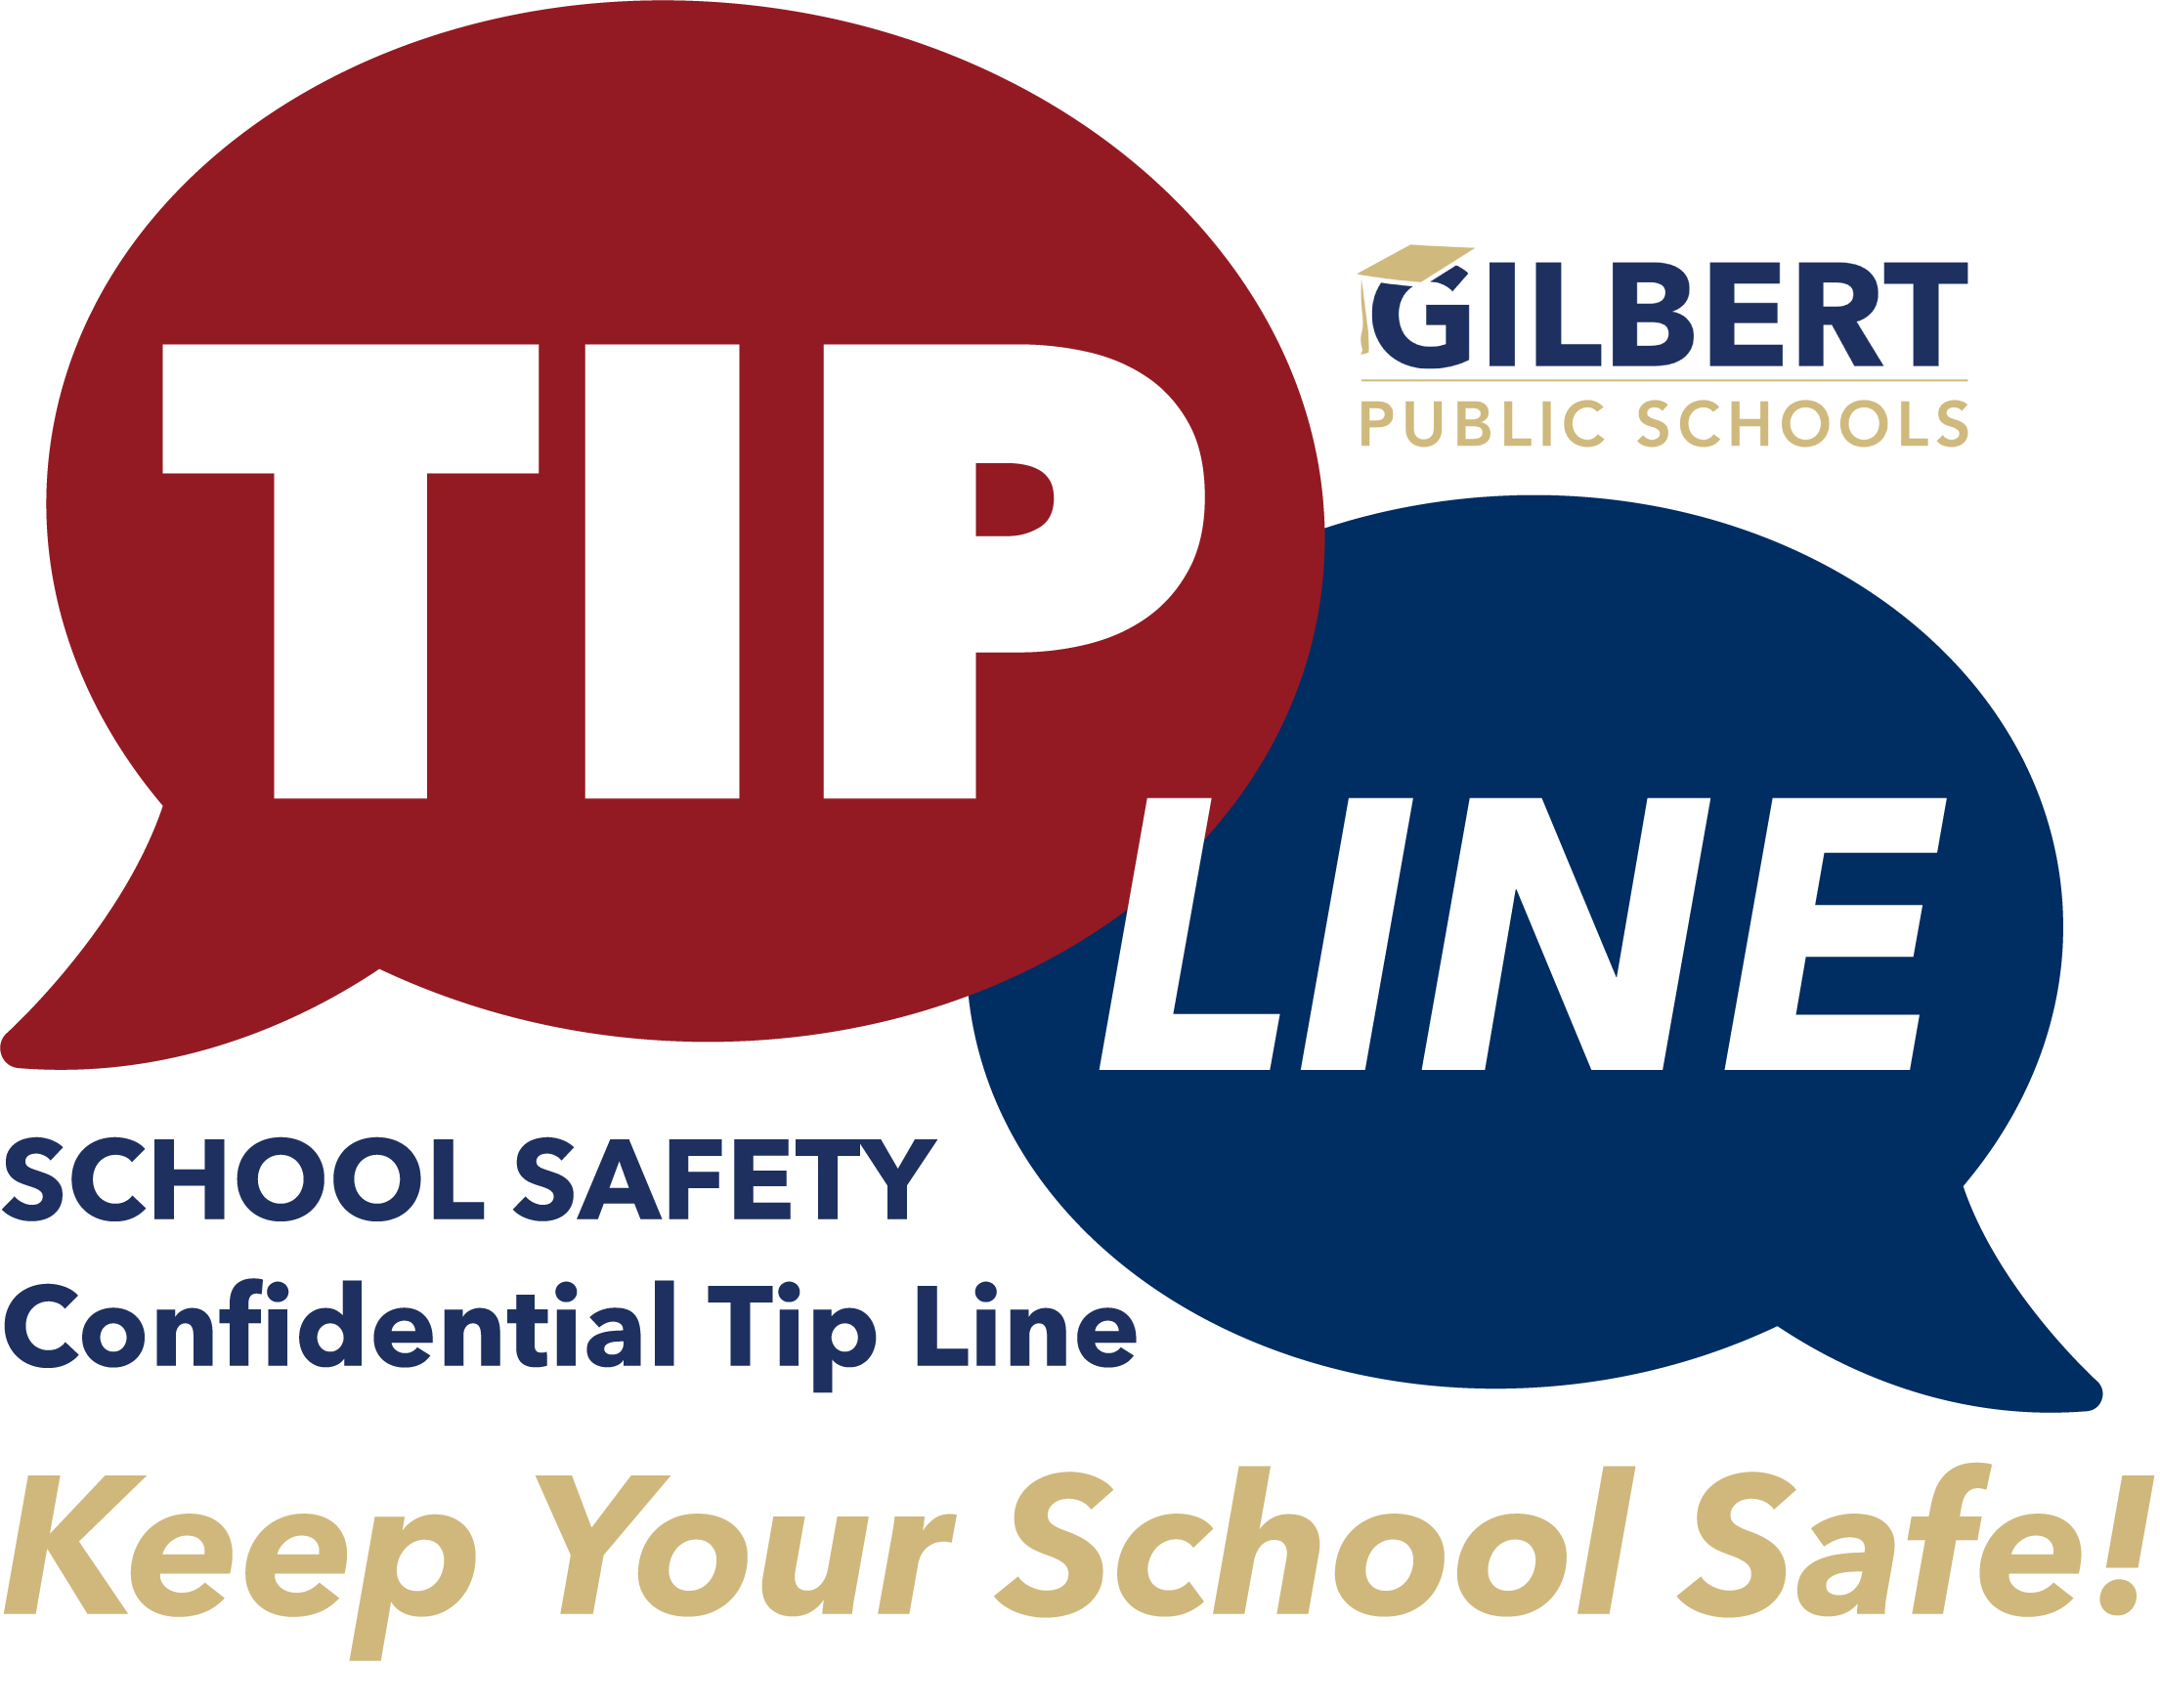 Gilbert Public Schools TIP LINE - Keep your school safe!